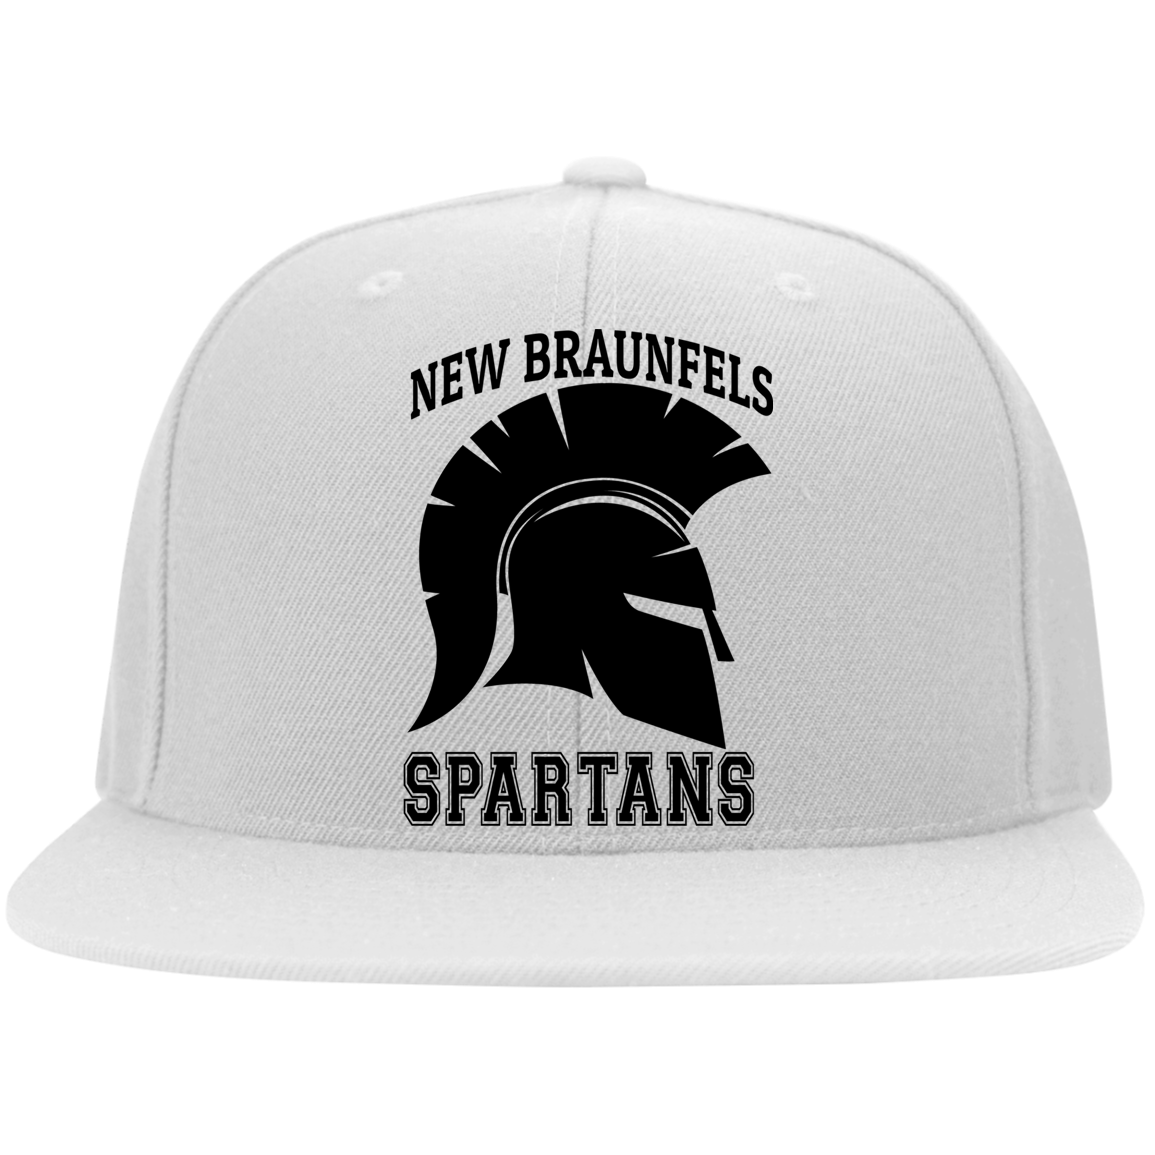 Spartans Flat Bill Twill Flexfit Cap